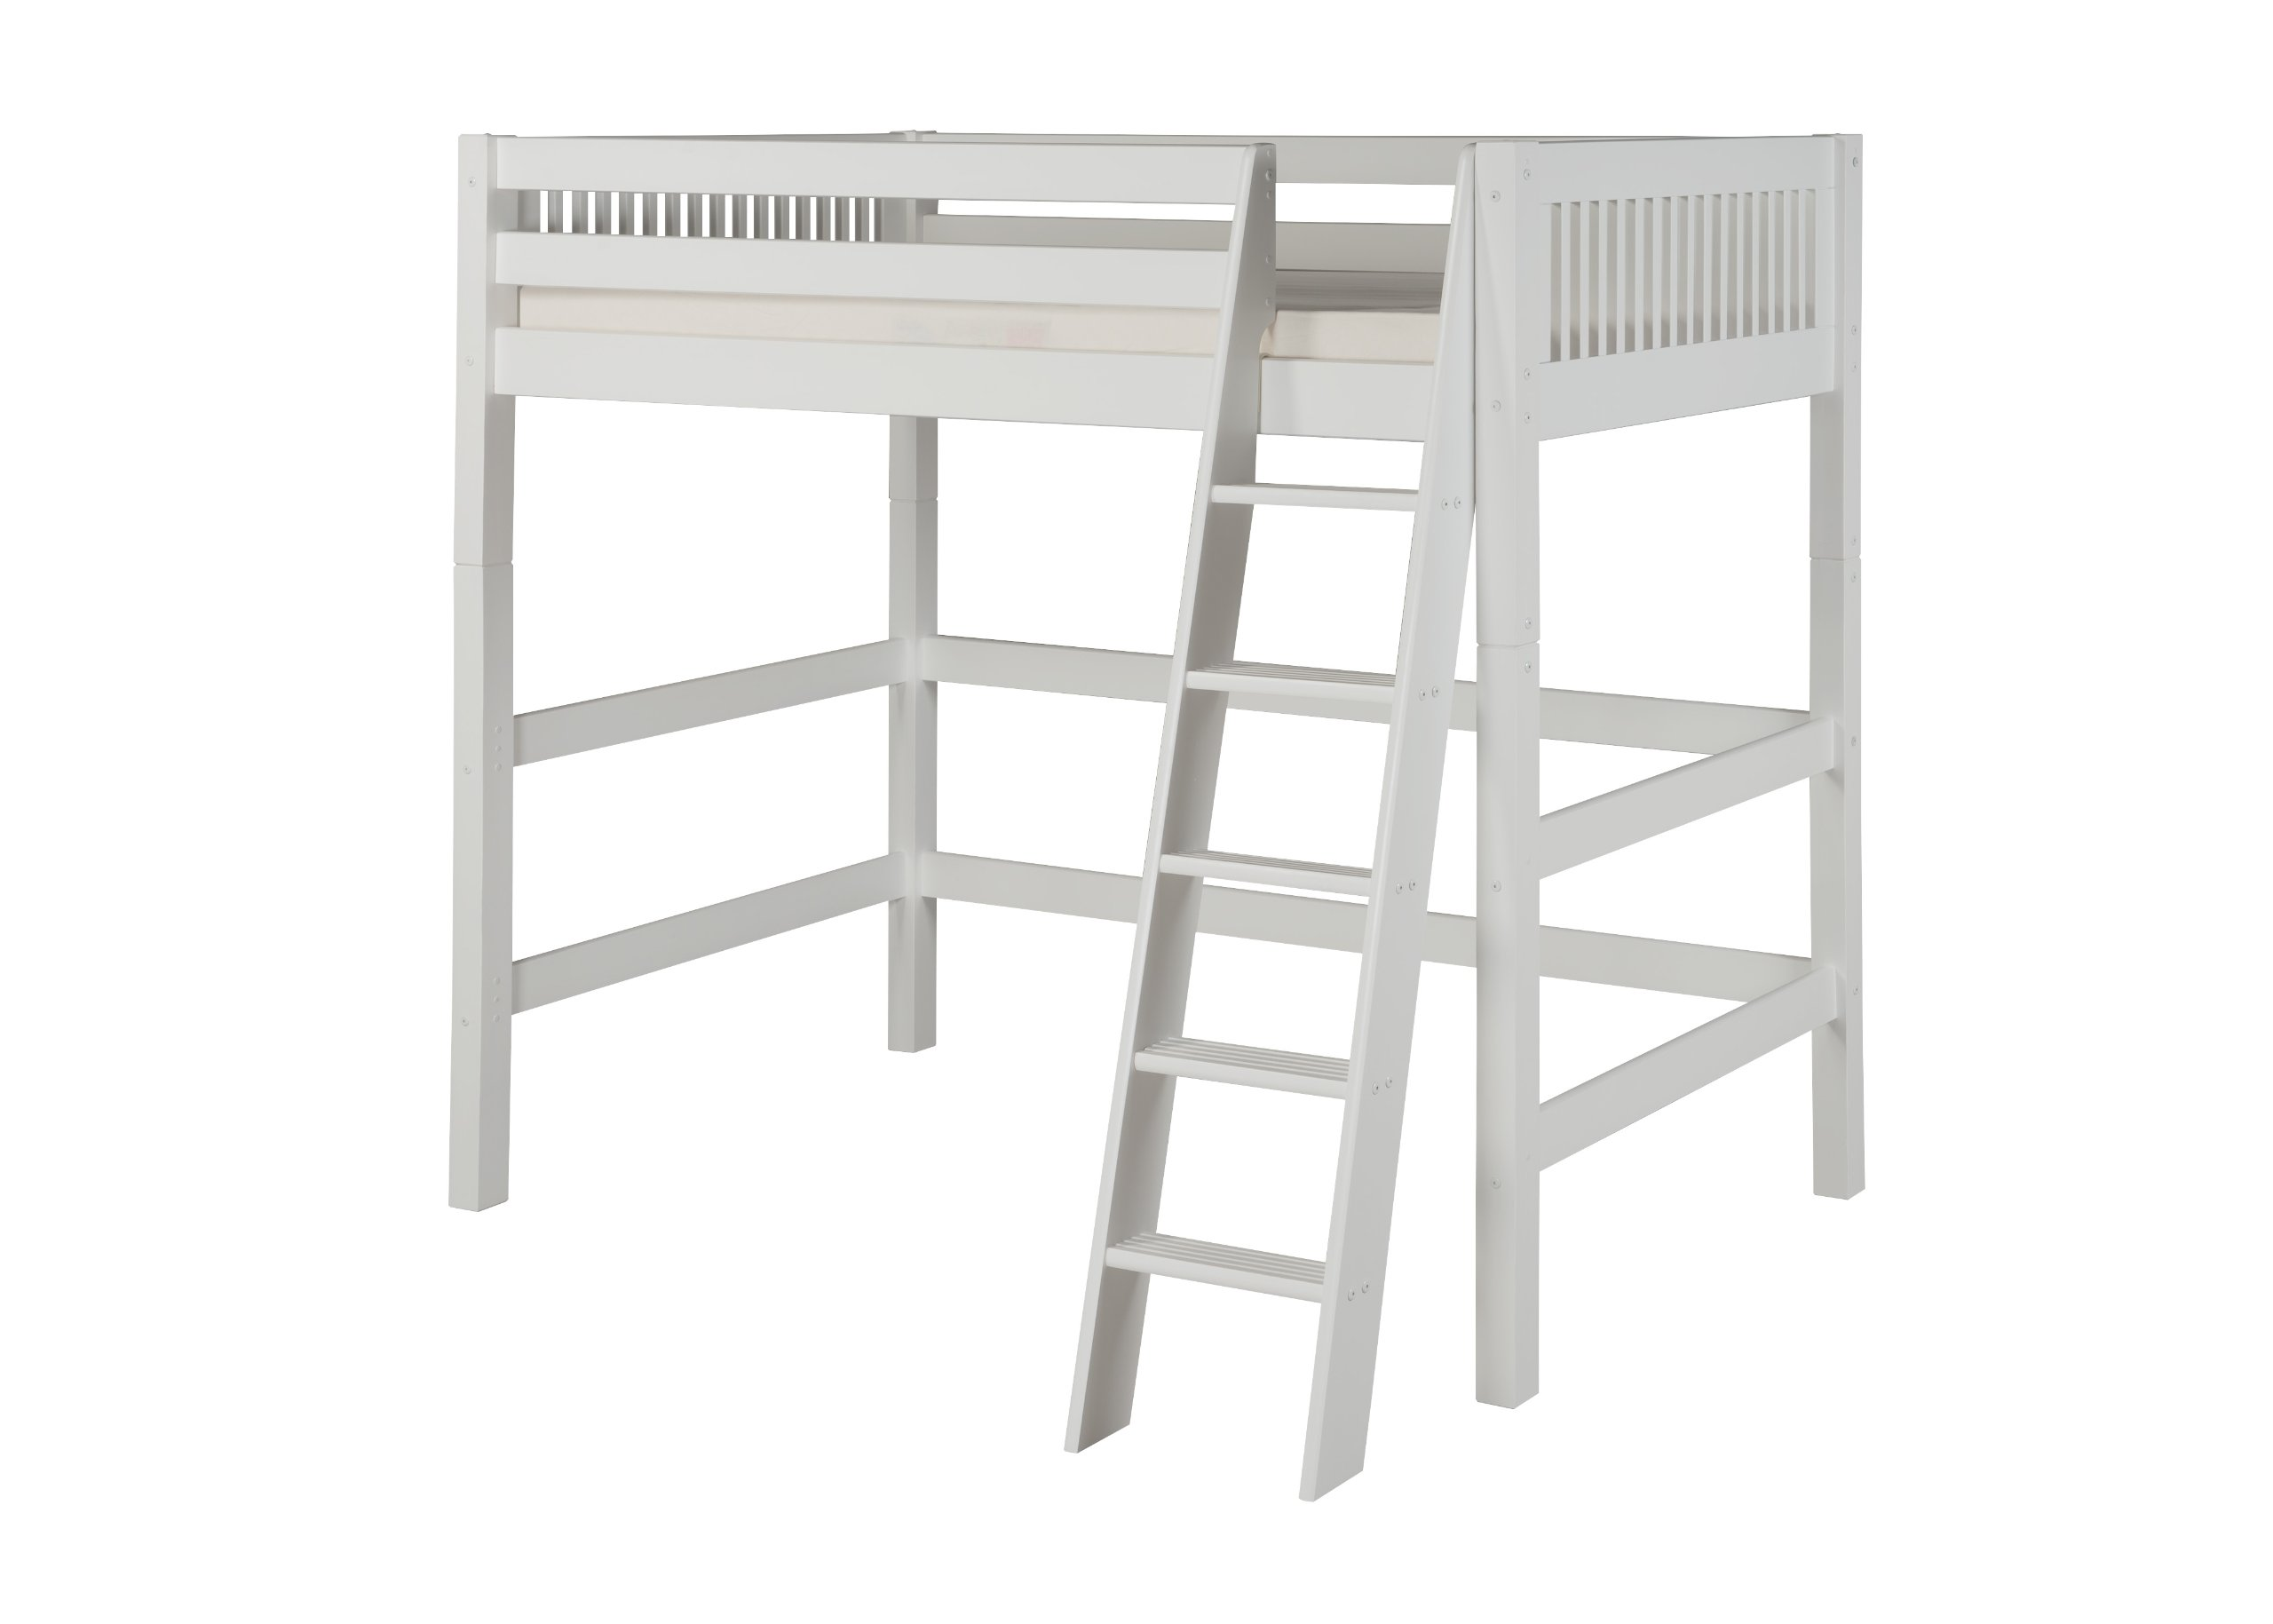 Camaflexi Mission Style Solid Wood High Loft Bed, Twin, Side Angled Ladder, White